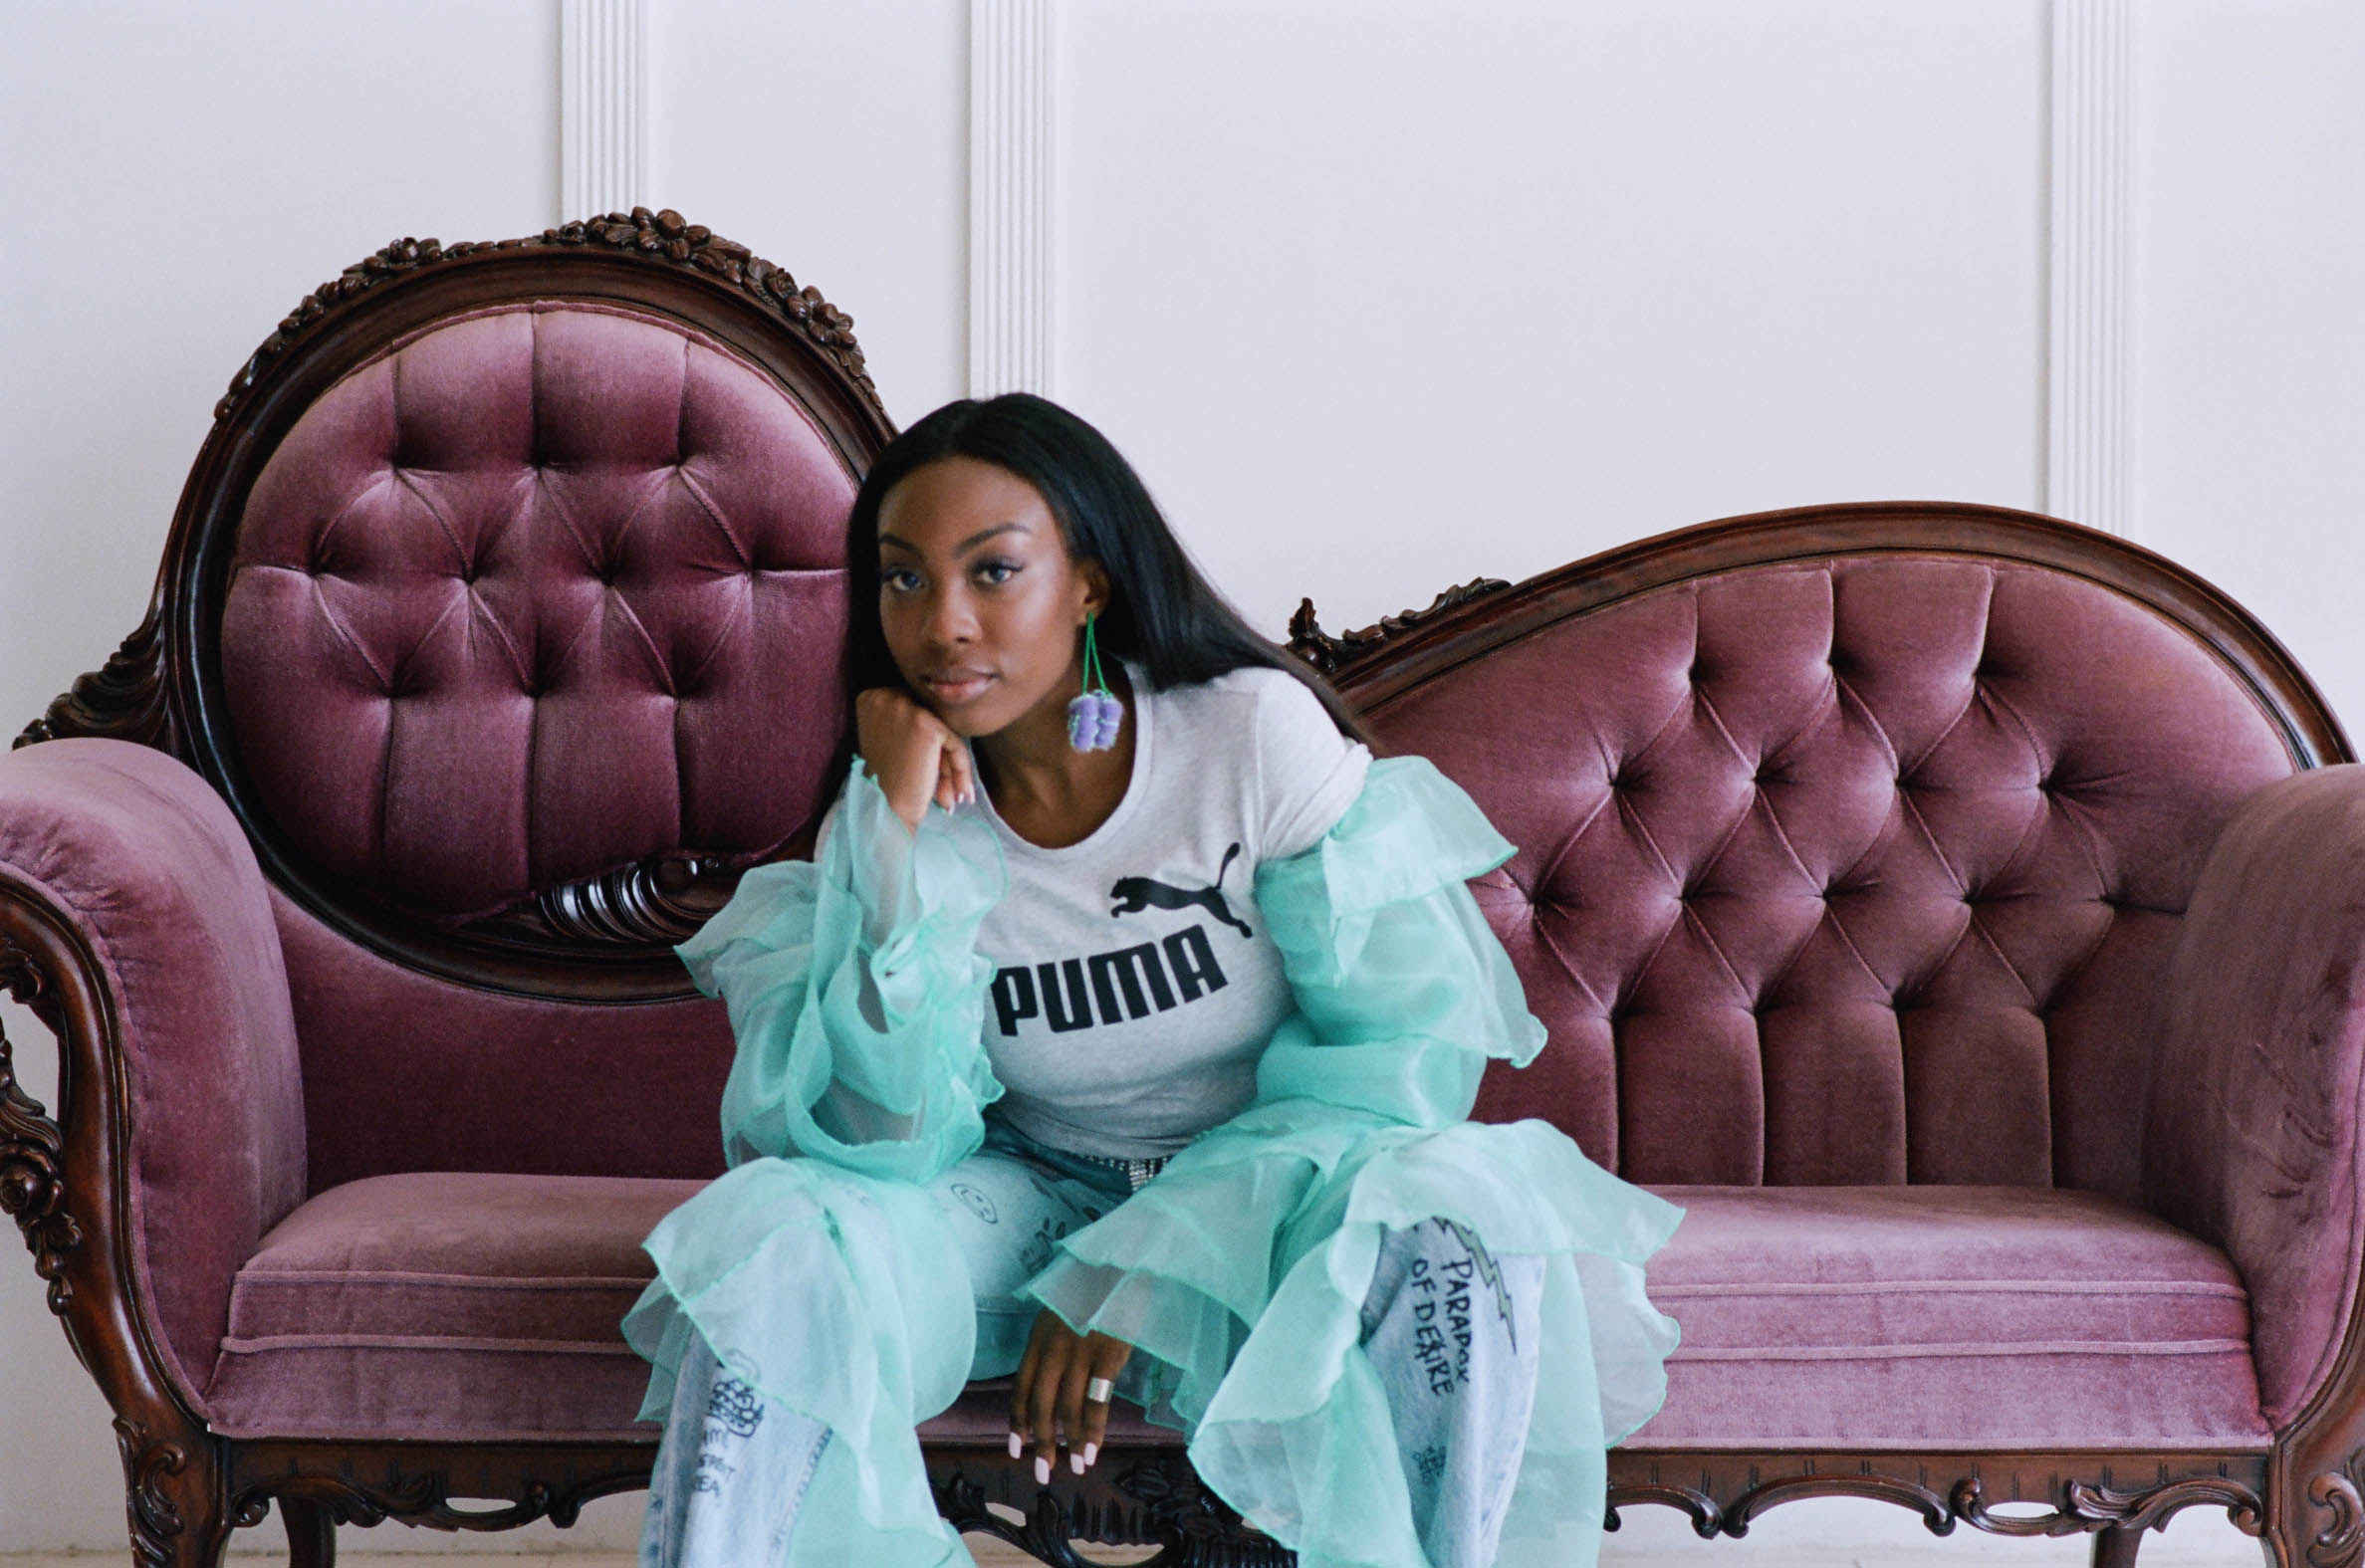 PUMA TEAMS WITH TEEN VOGUE FOR SEASON 2 OF 'DO YOU' DOCUSERIES